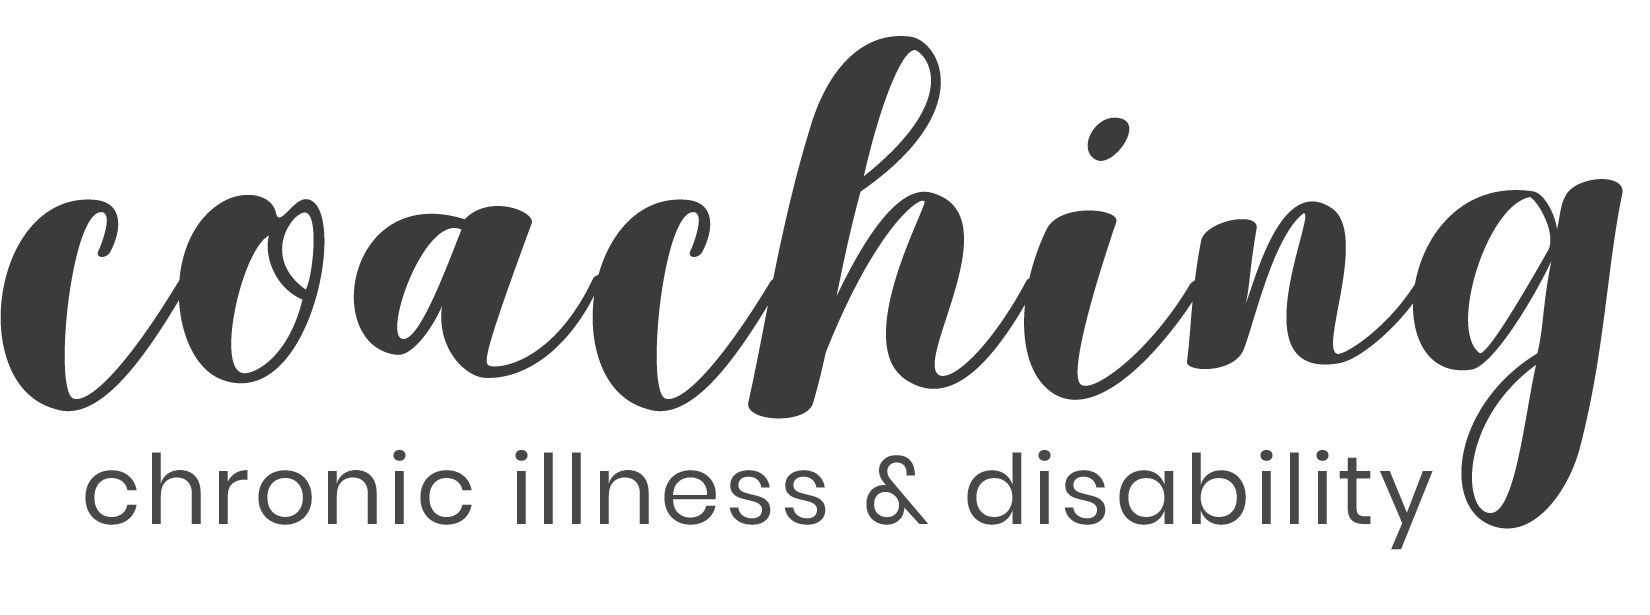 """The word """"coaching"""" in a grey scripted font with the words """"chronic illness and disability"""" underneath"""